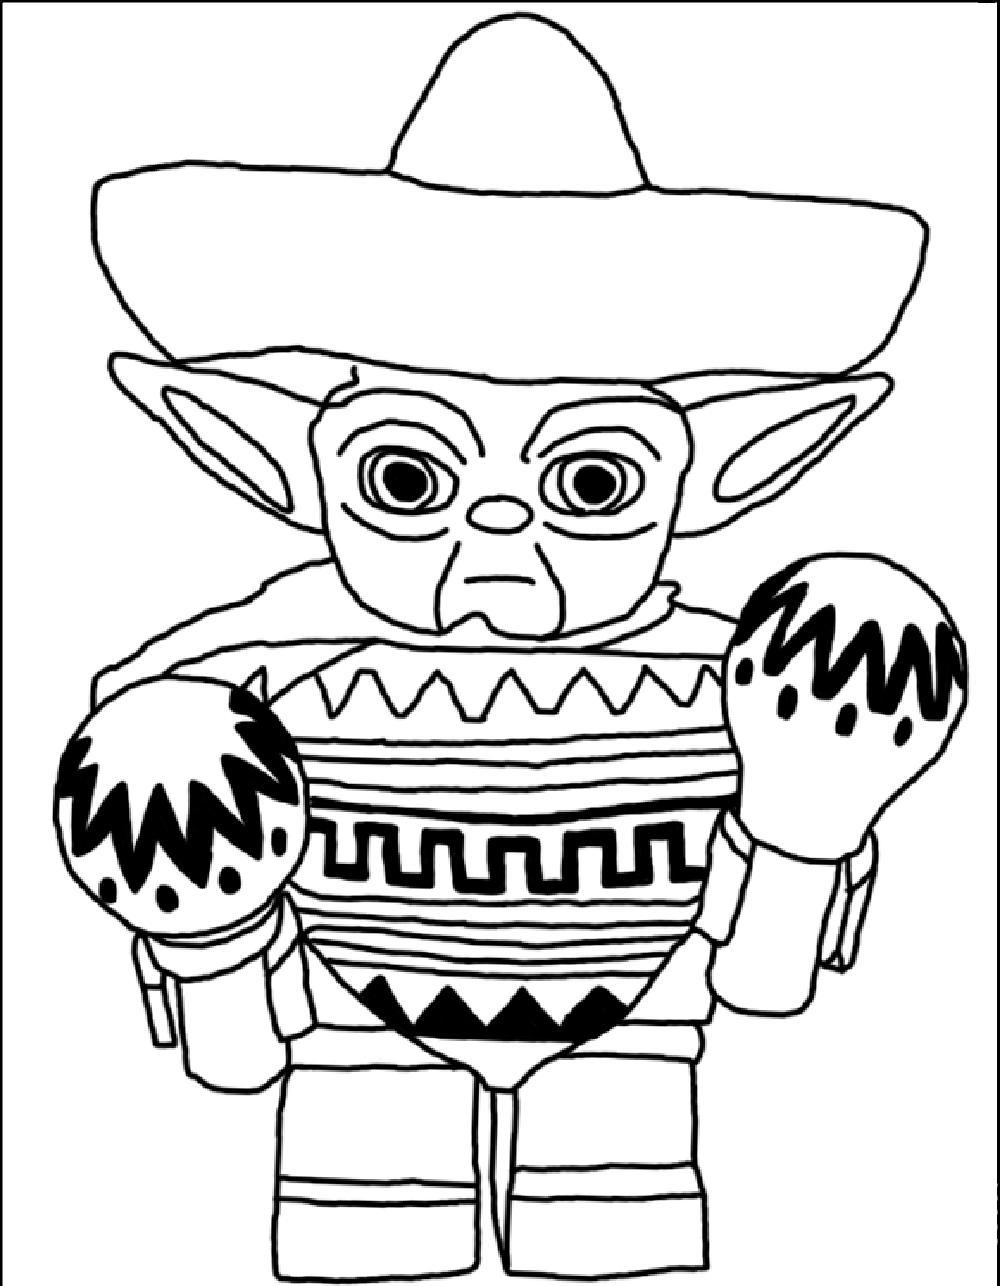 coloring lego star wars lego star wars coloring pages to download and print for free wars star lego coloring